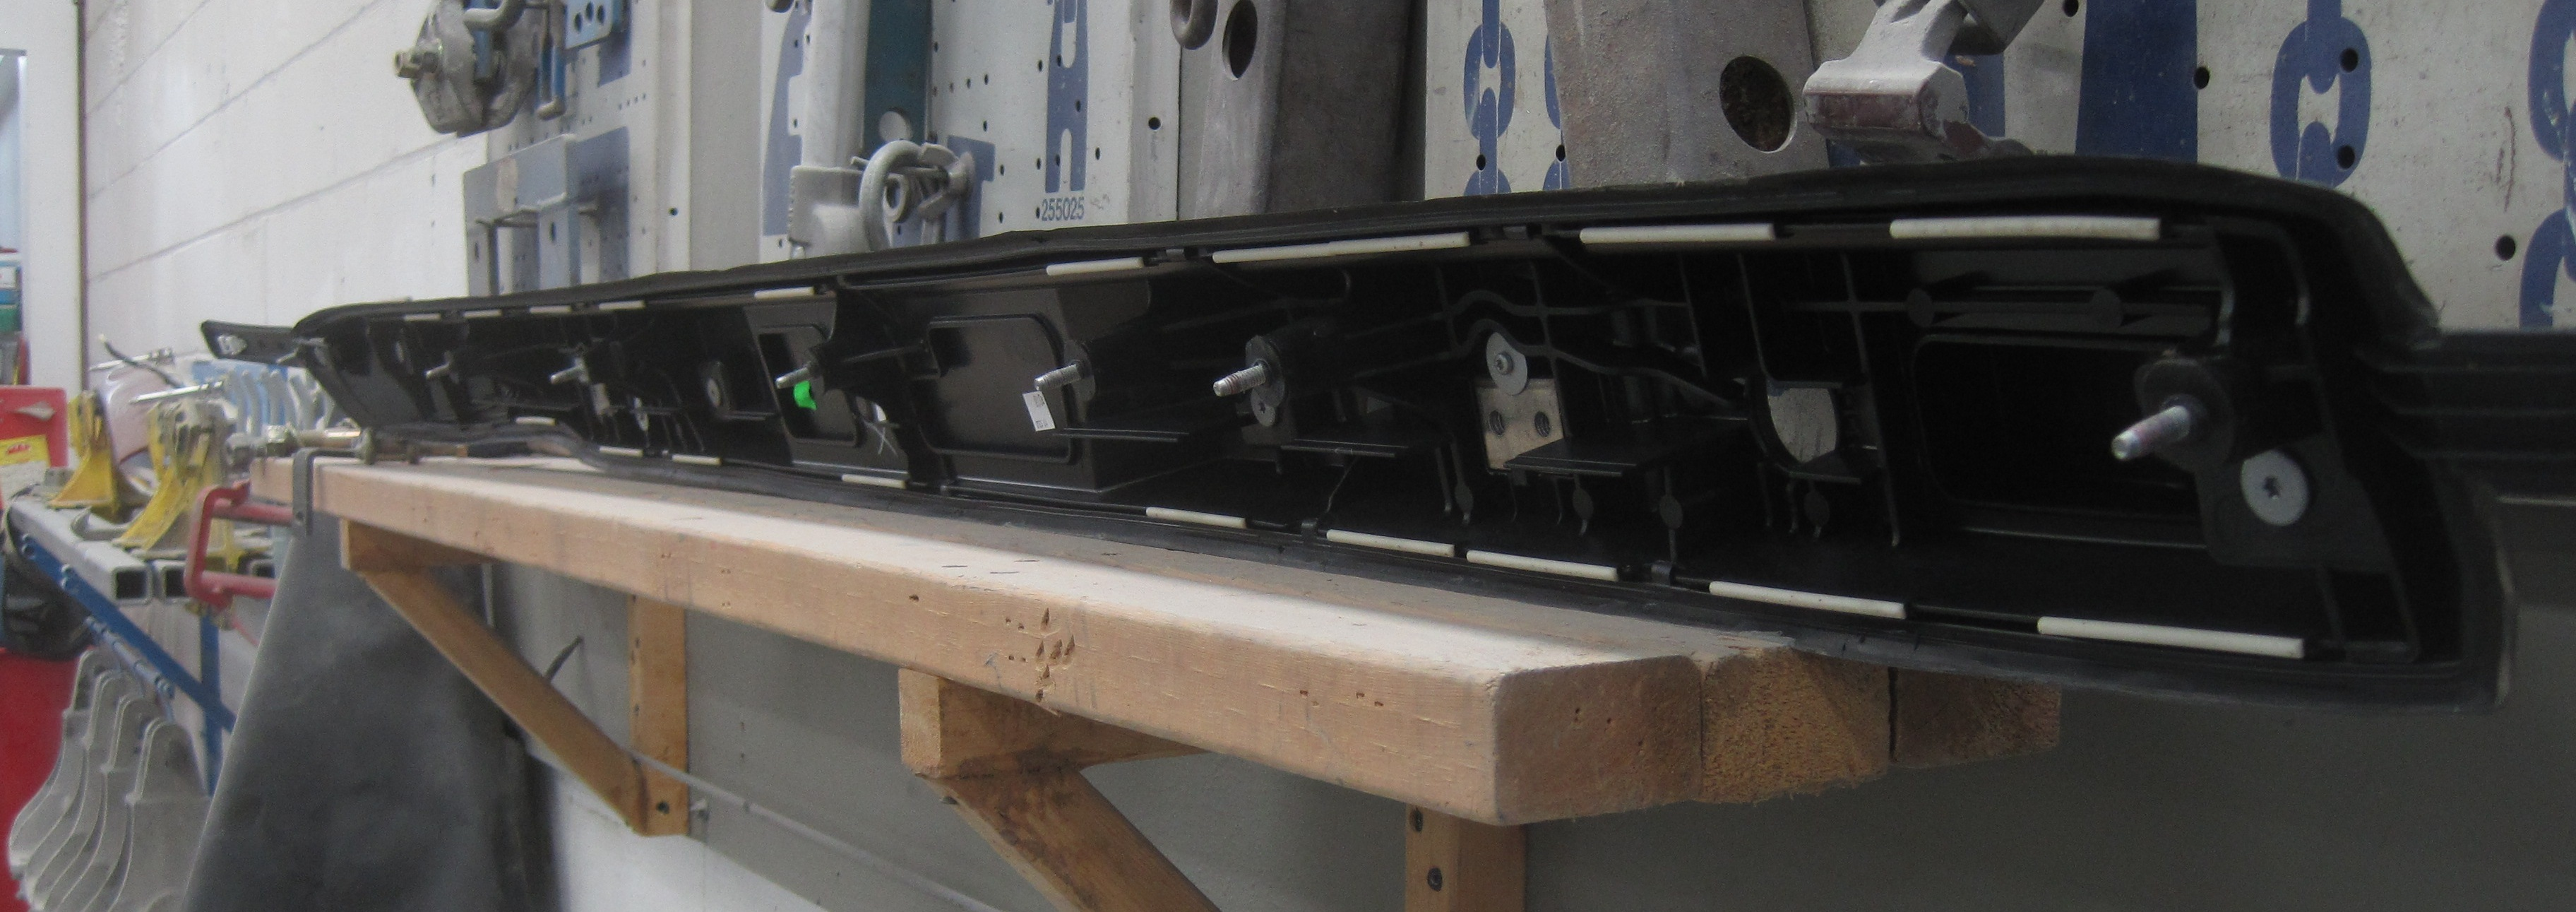 Subaru Roof Rack Parts Diagram Not Lossing Wiring Generator Detailed Of The 2015 Outback Rails Rh Subaruoutback Org